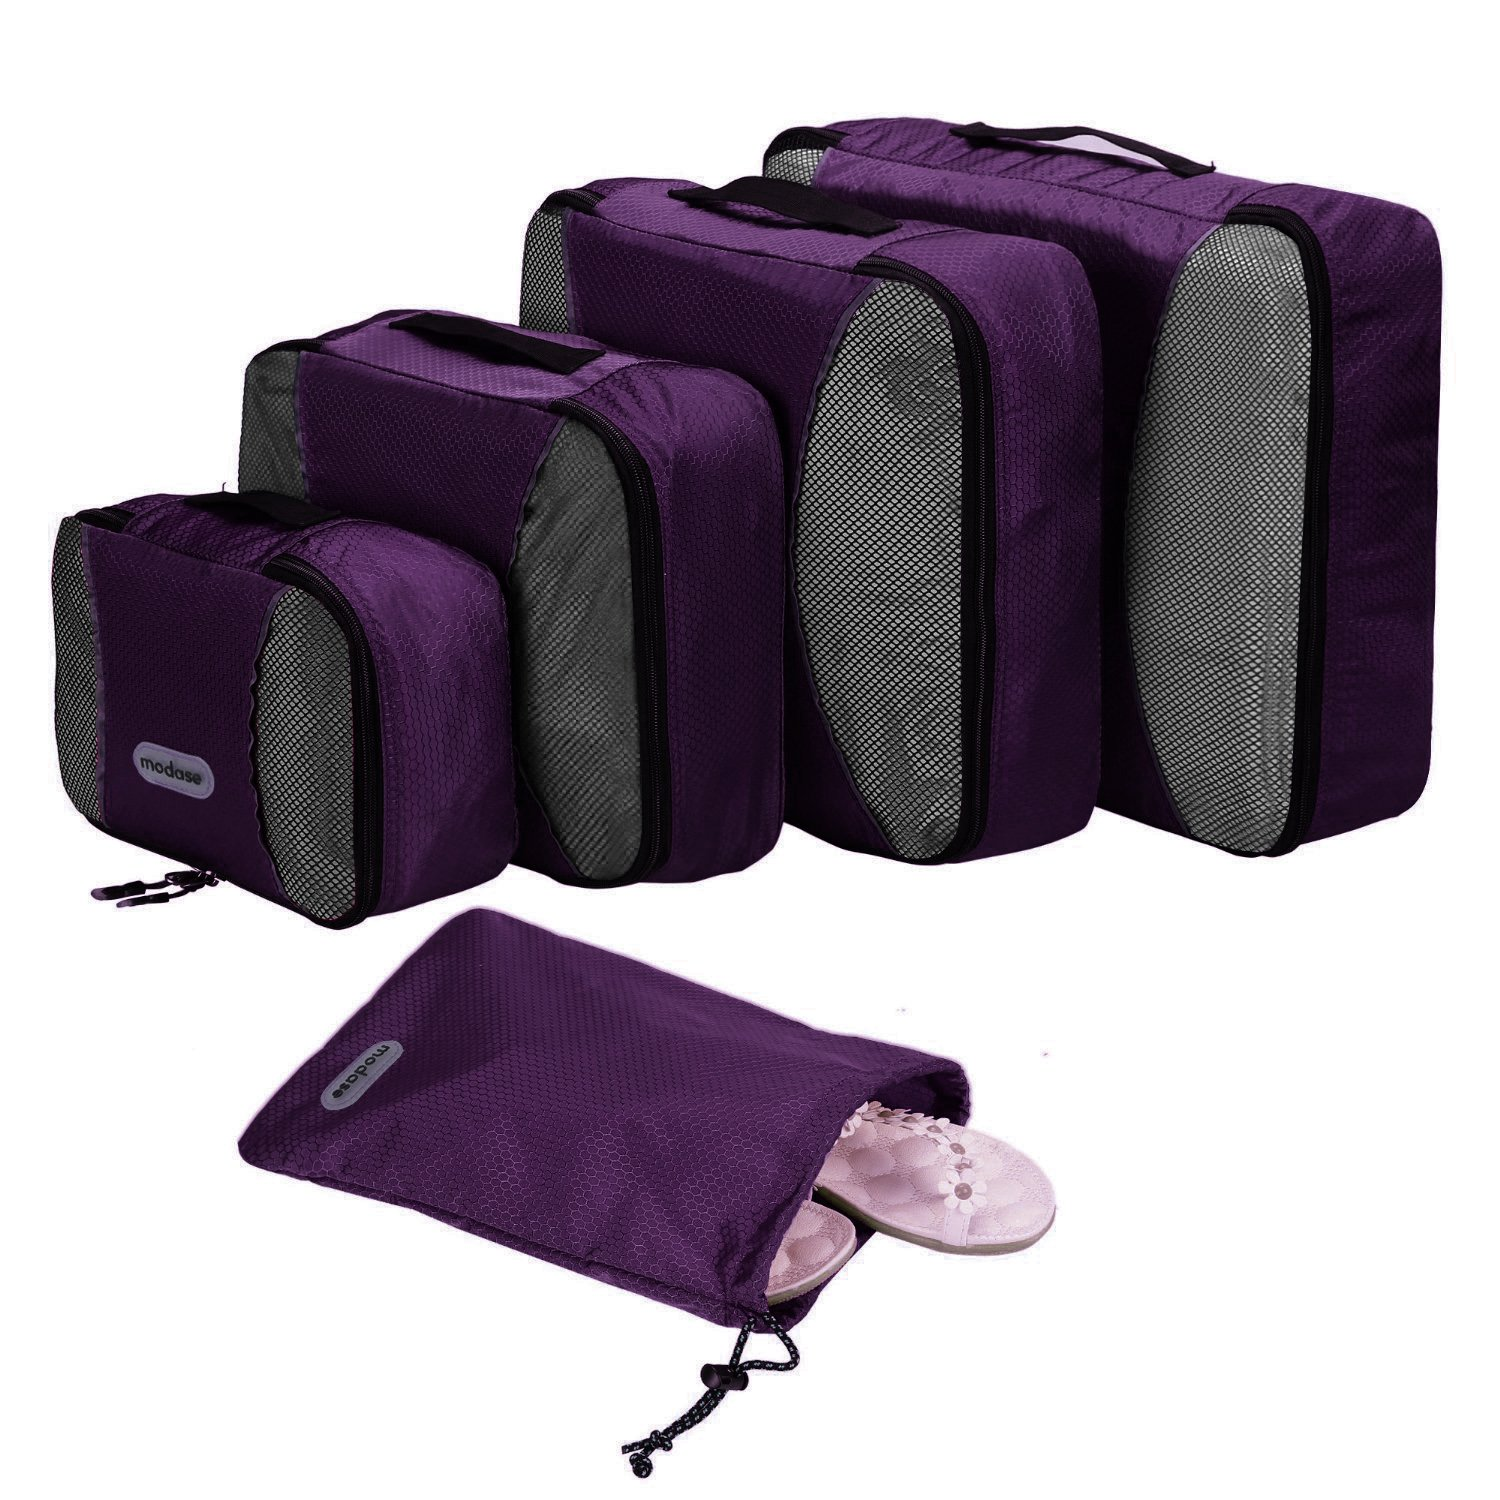 modase Premium Packing Cubes Set Travel, 4-Piece Organizer Bags Laundry Bag